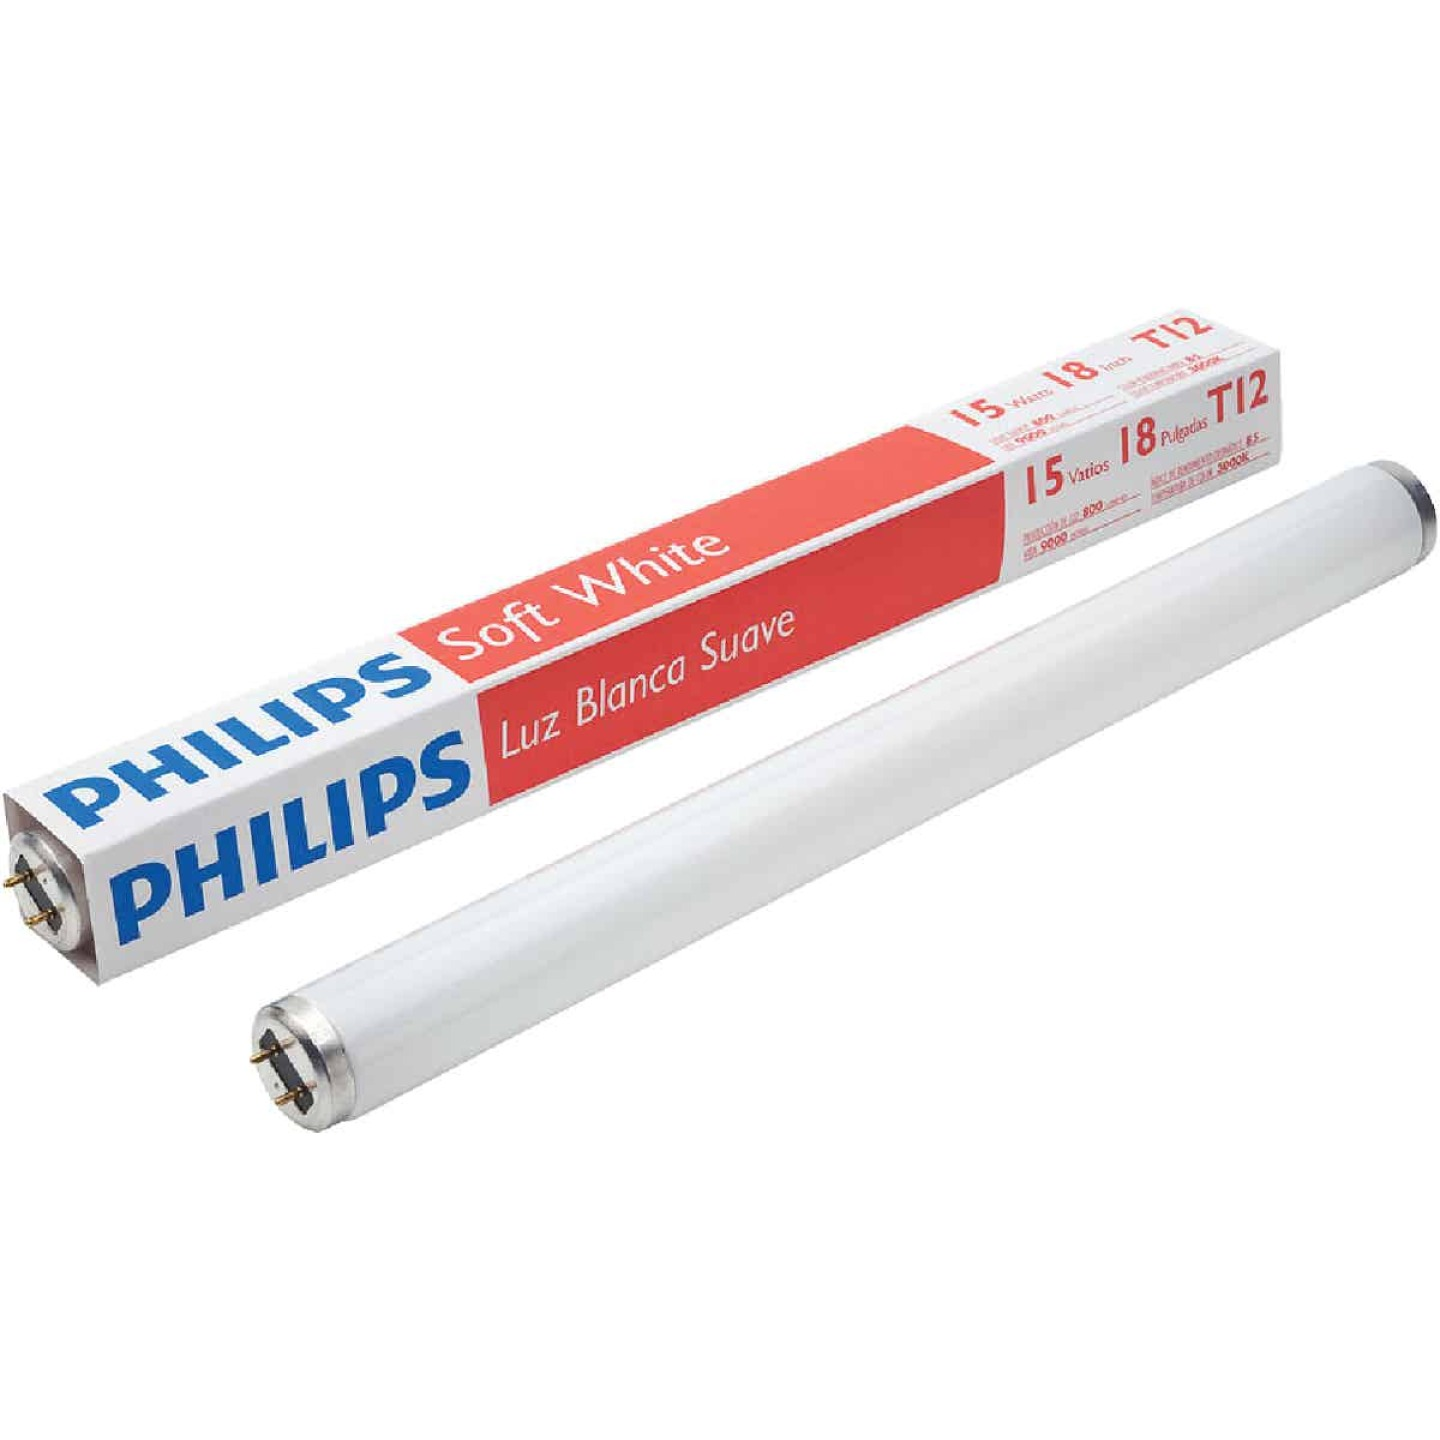 Philips ALTO 15W 18 In. Soft White T12 Medium Bi-Pin Fluorescent Tube Light Bulb Image 1